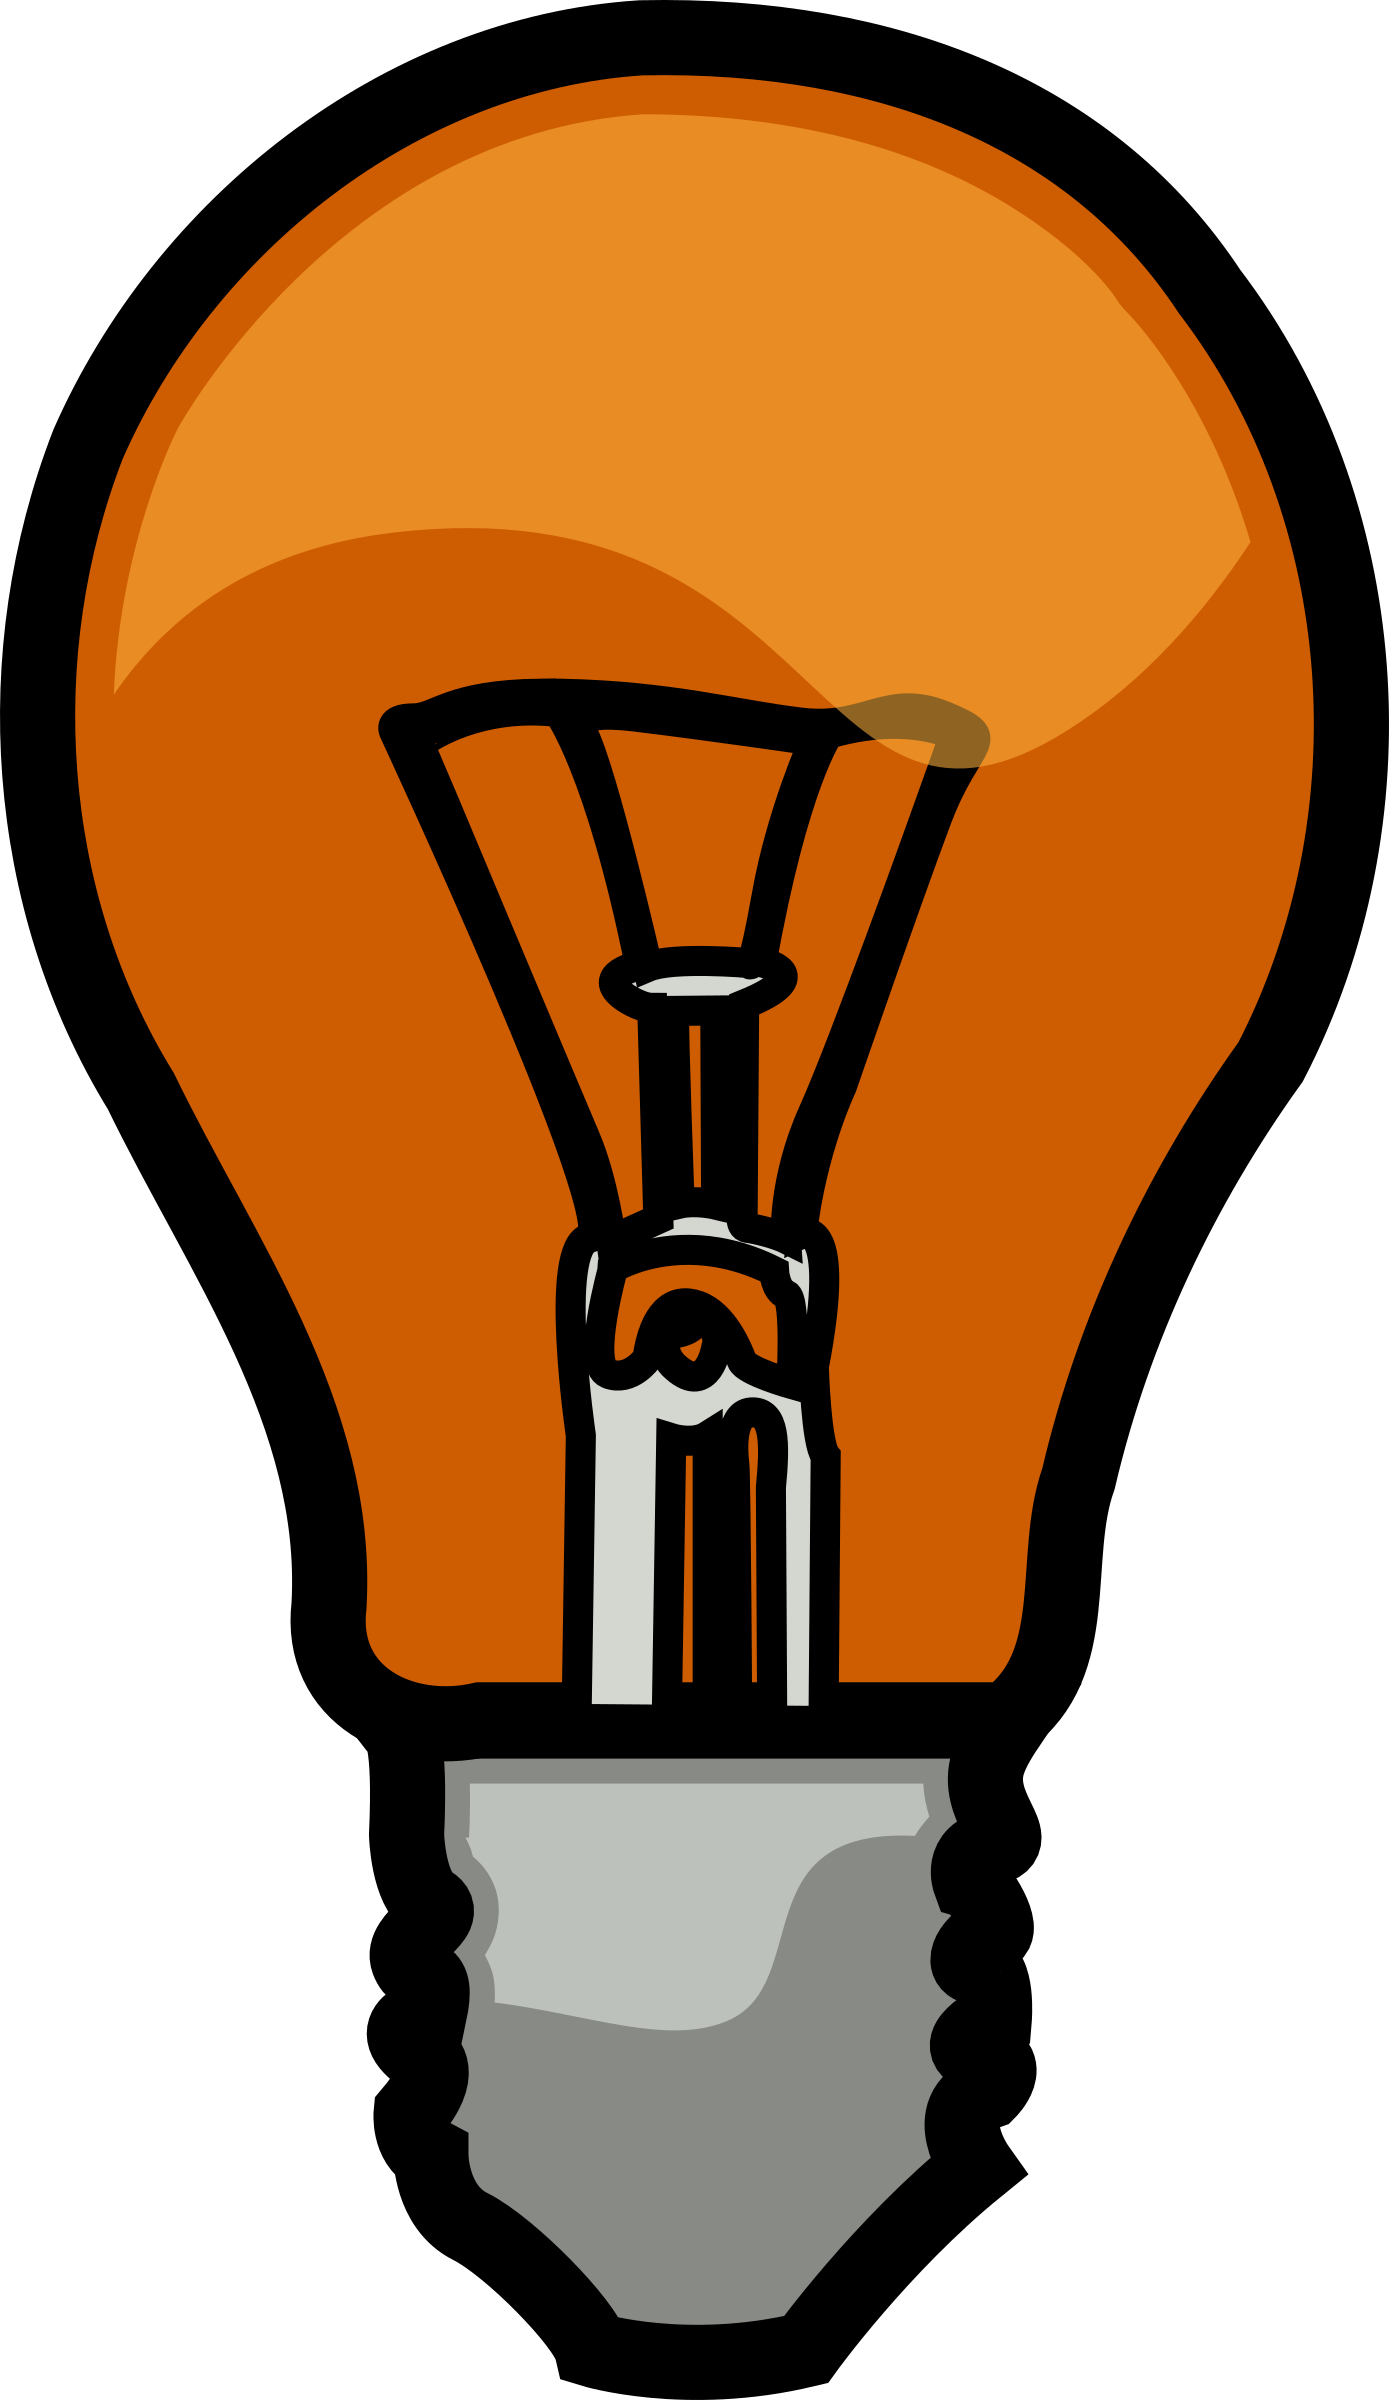 Light Bulb 1 by dandelionmood